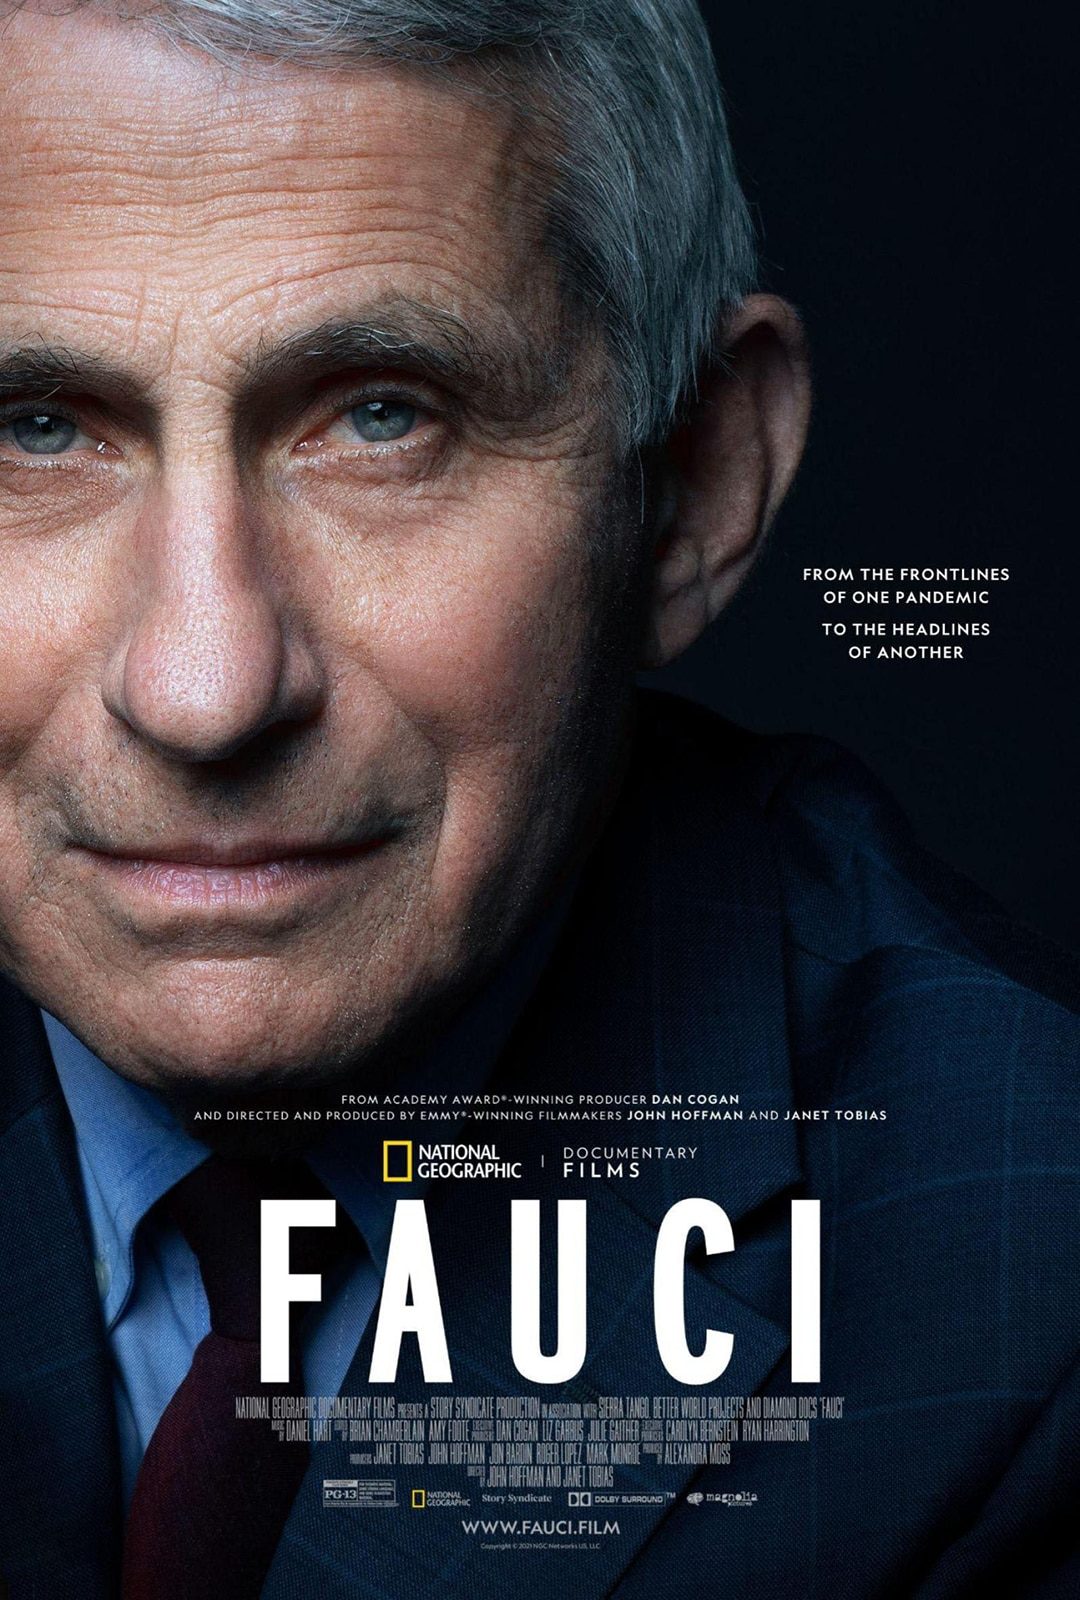 Fauci poster